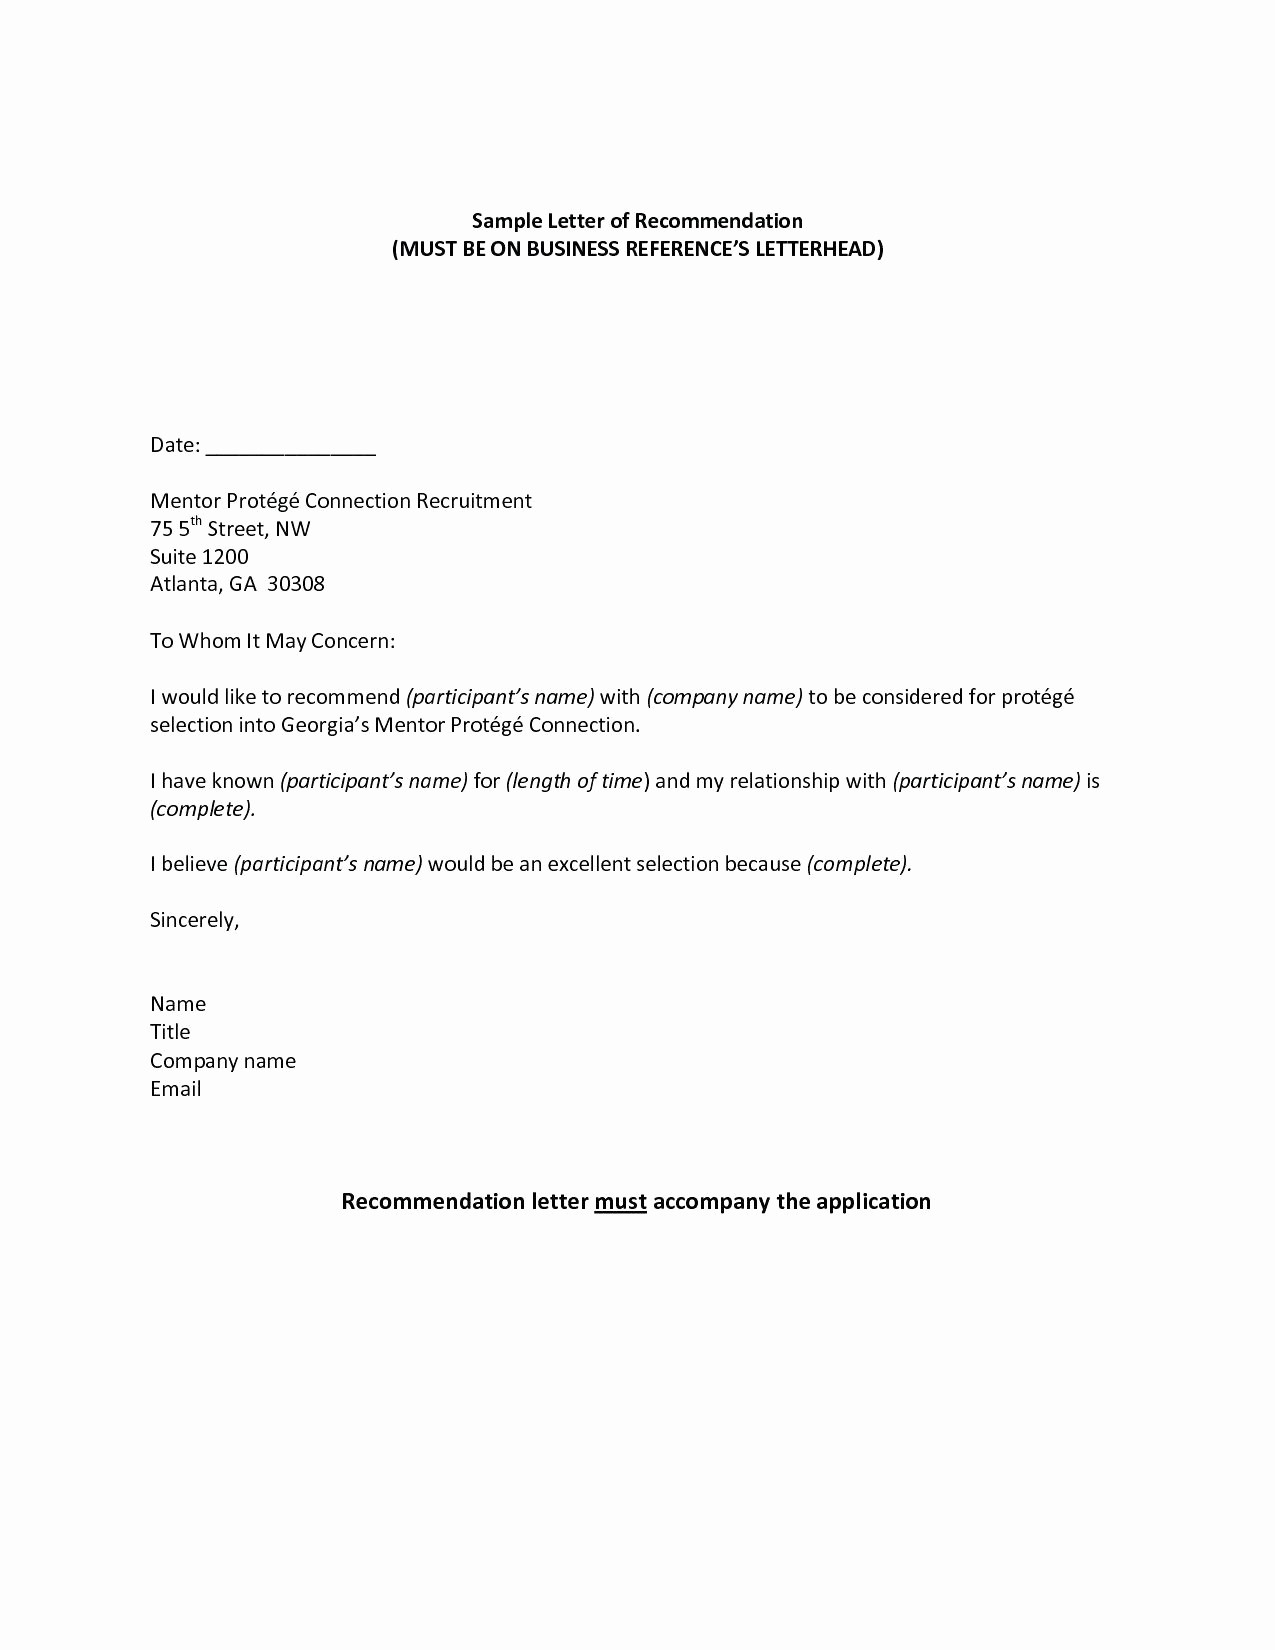 Formats for Letters Of Recommendation Elegant Mortgage Reference Letter From Employer Template Samples